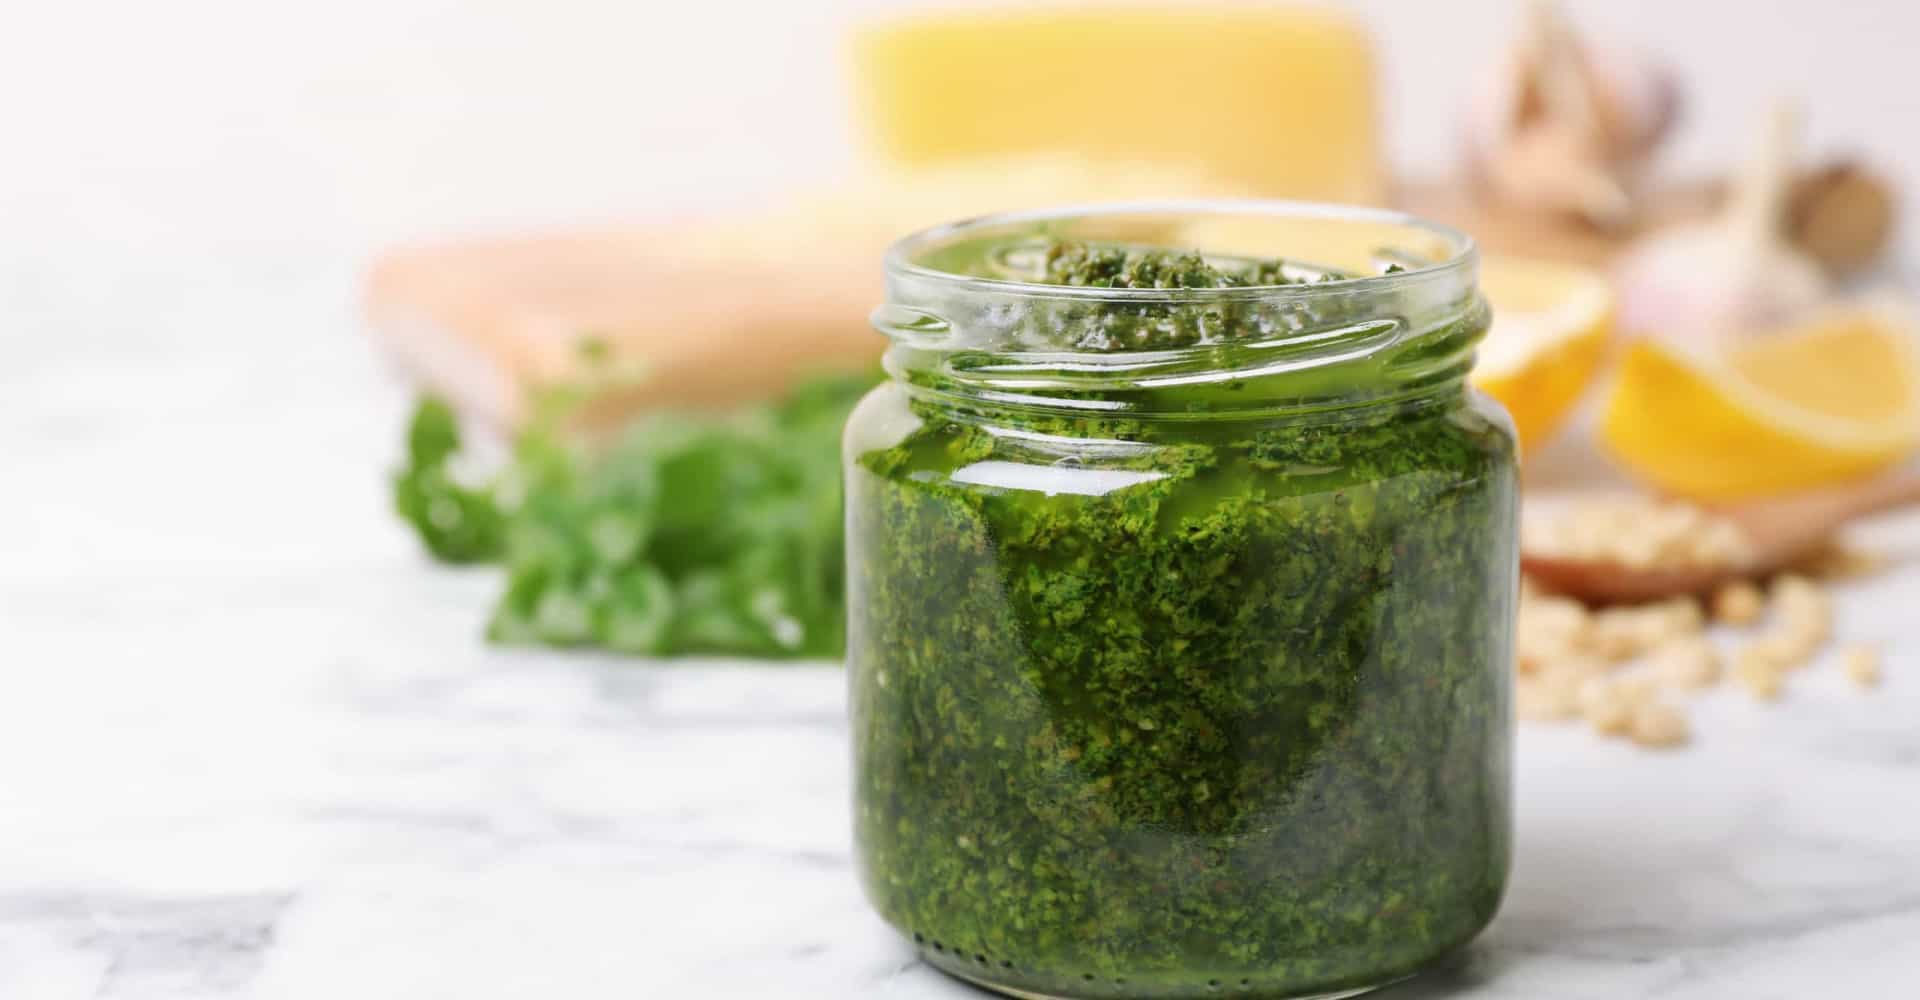 The best meals to enjoy pesto with